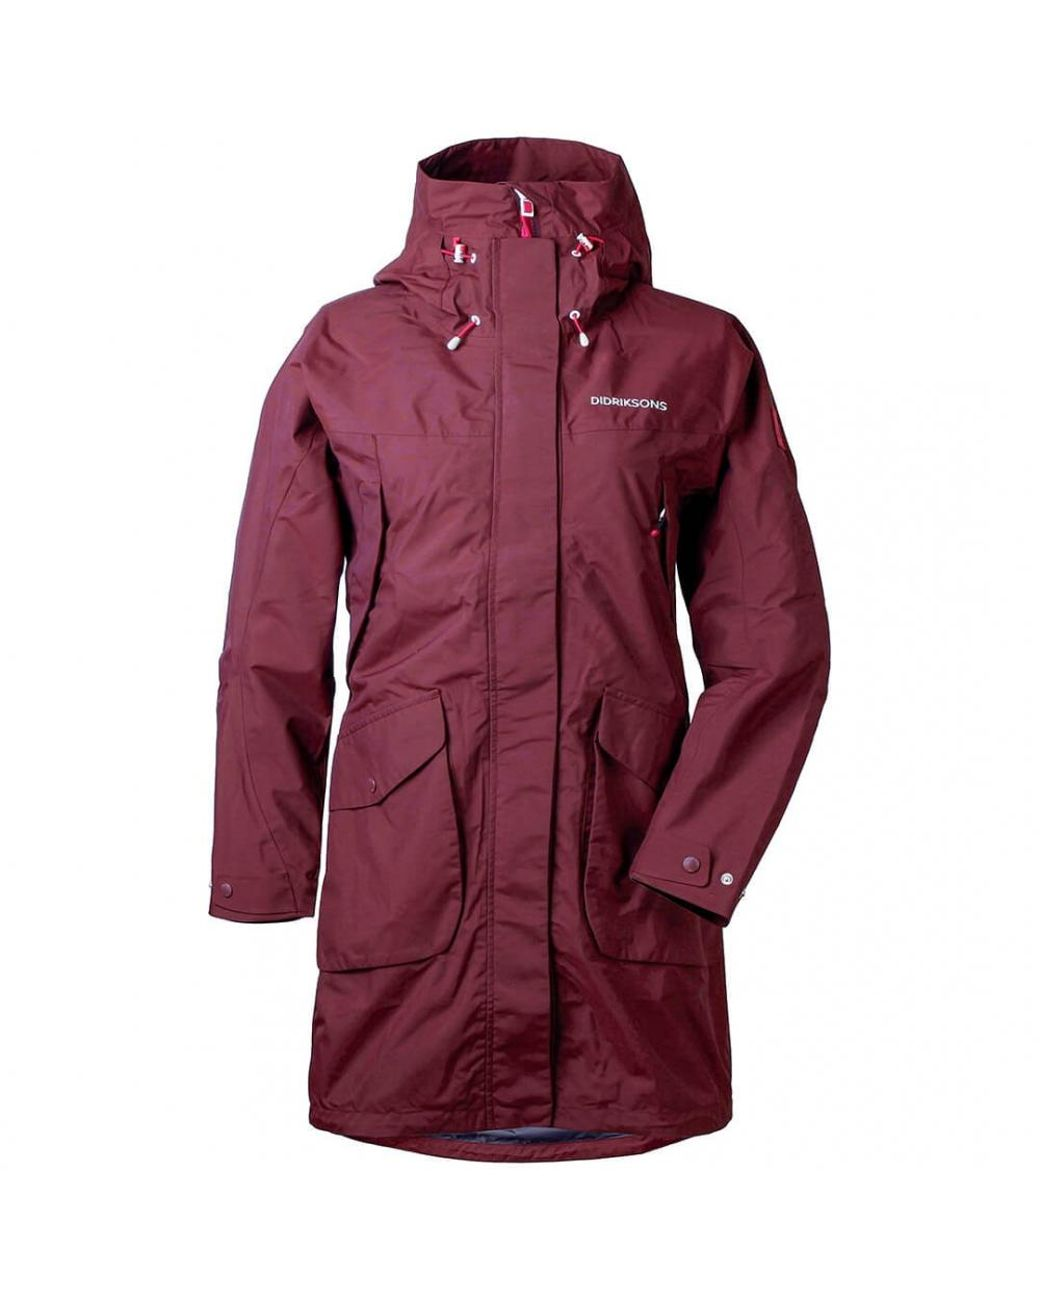 21d43103bd8 Didriksons Thelma Womens Parka in Red - Lyst